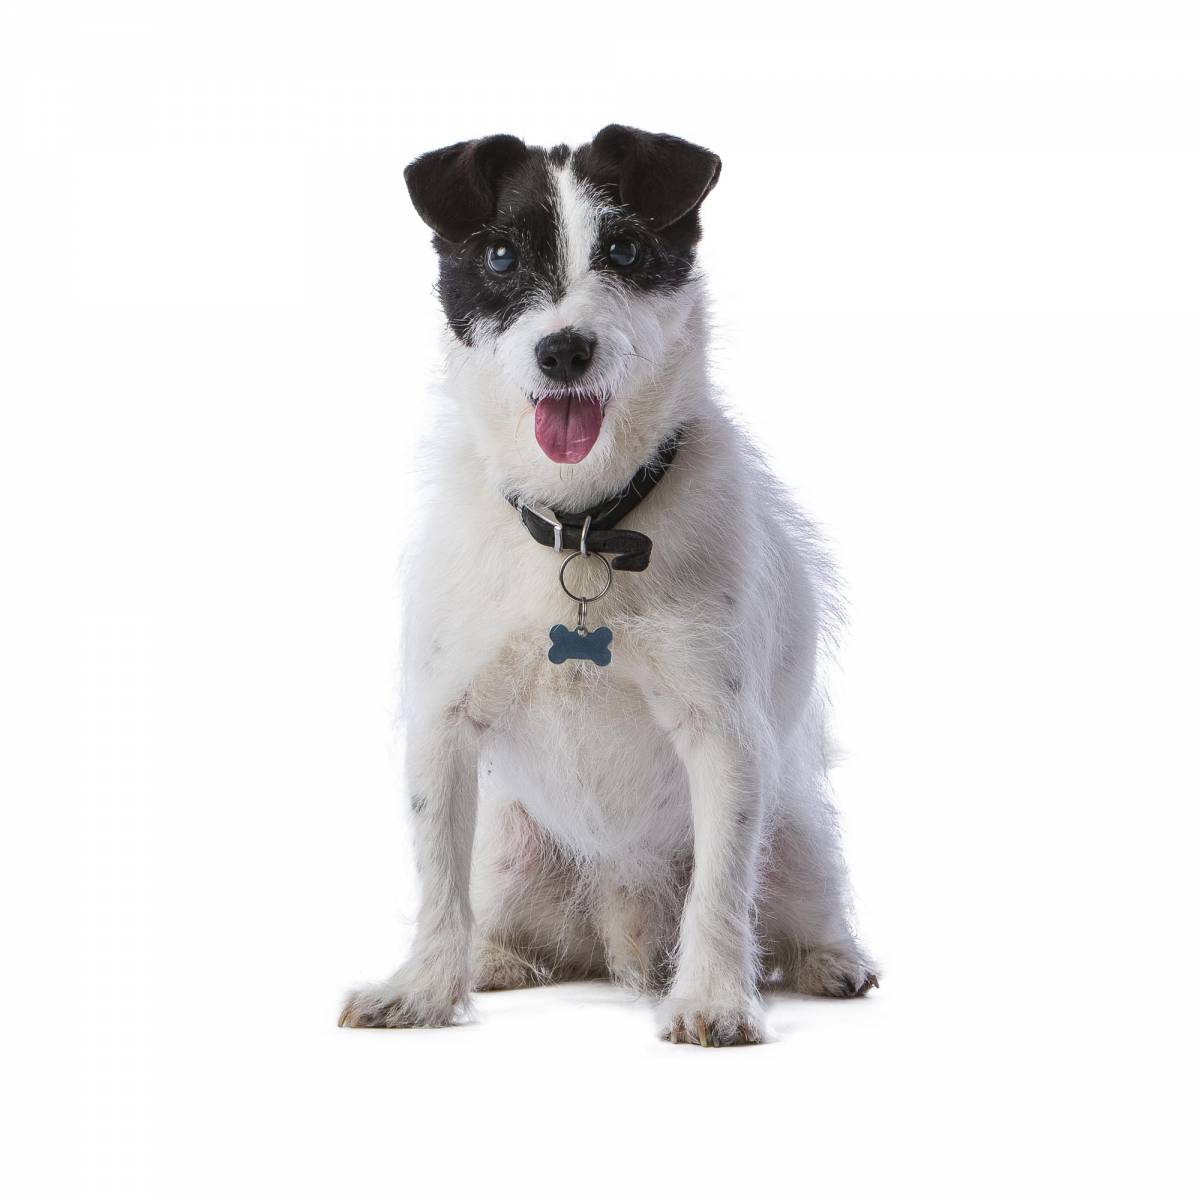 Jack Russell Terrier portrait by Mark Hewitson Photography of Thame